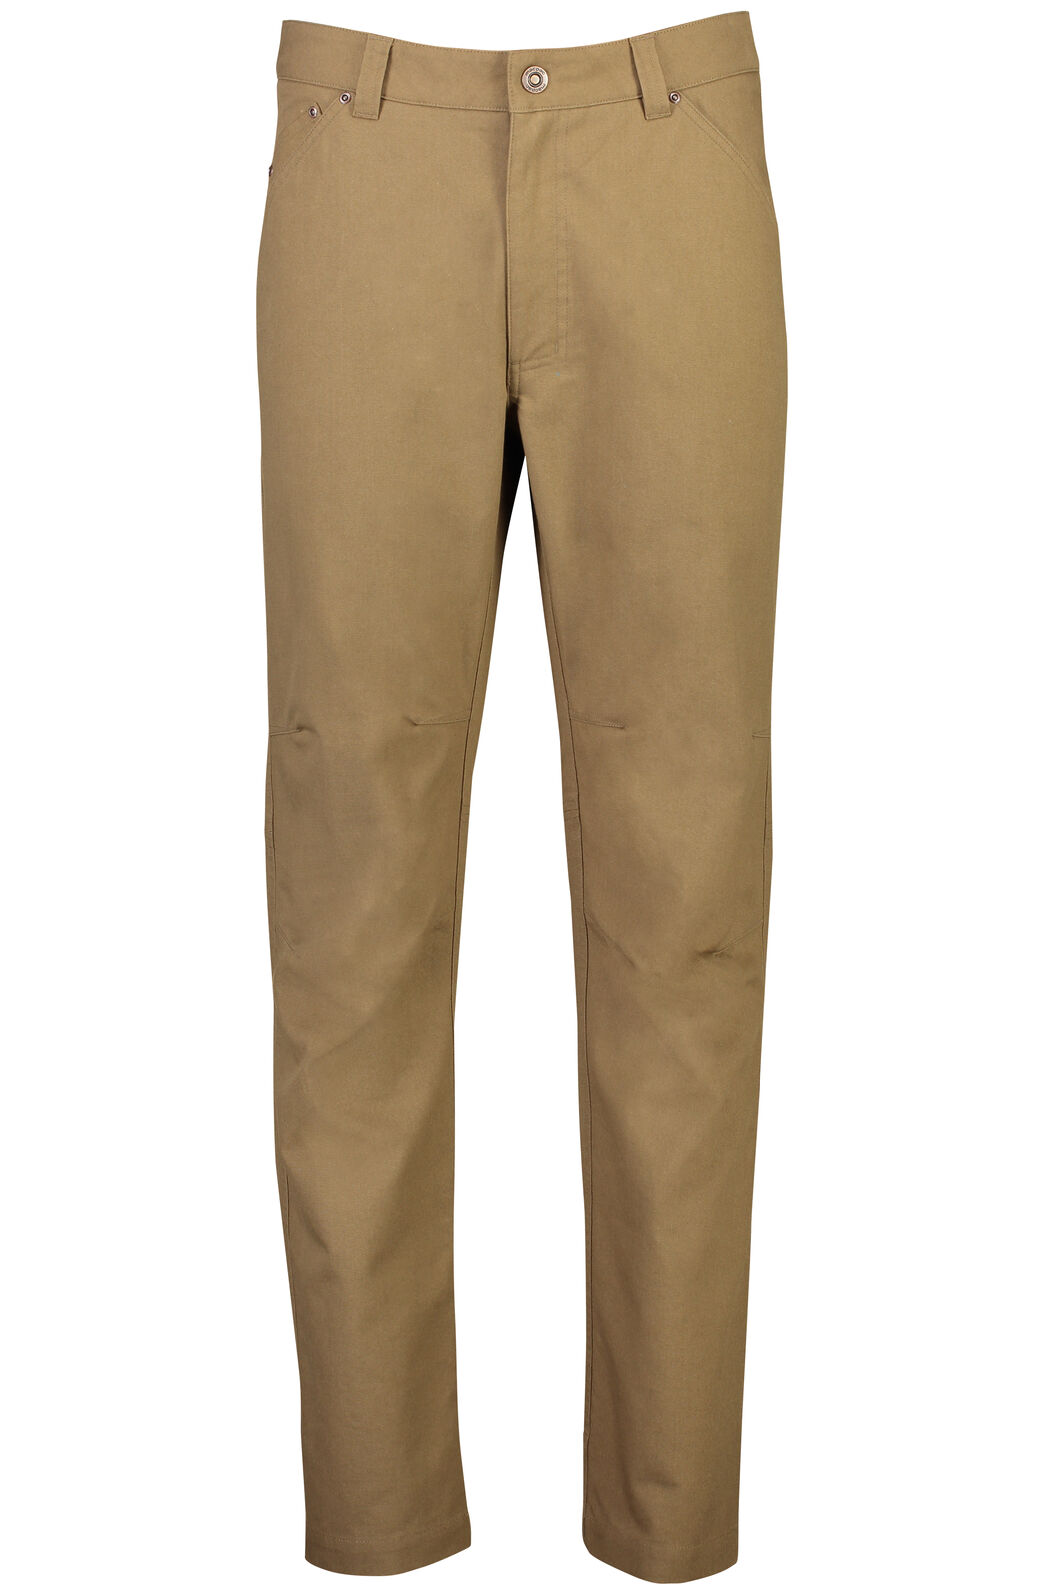 Macpac Navigator Pants - Men's, Desert Palm, hi-res